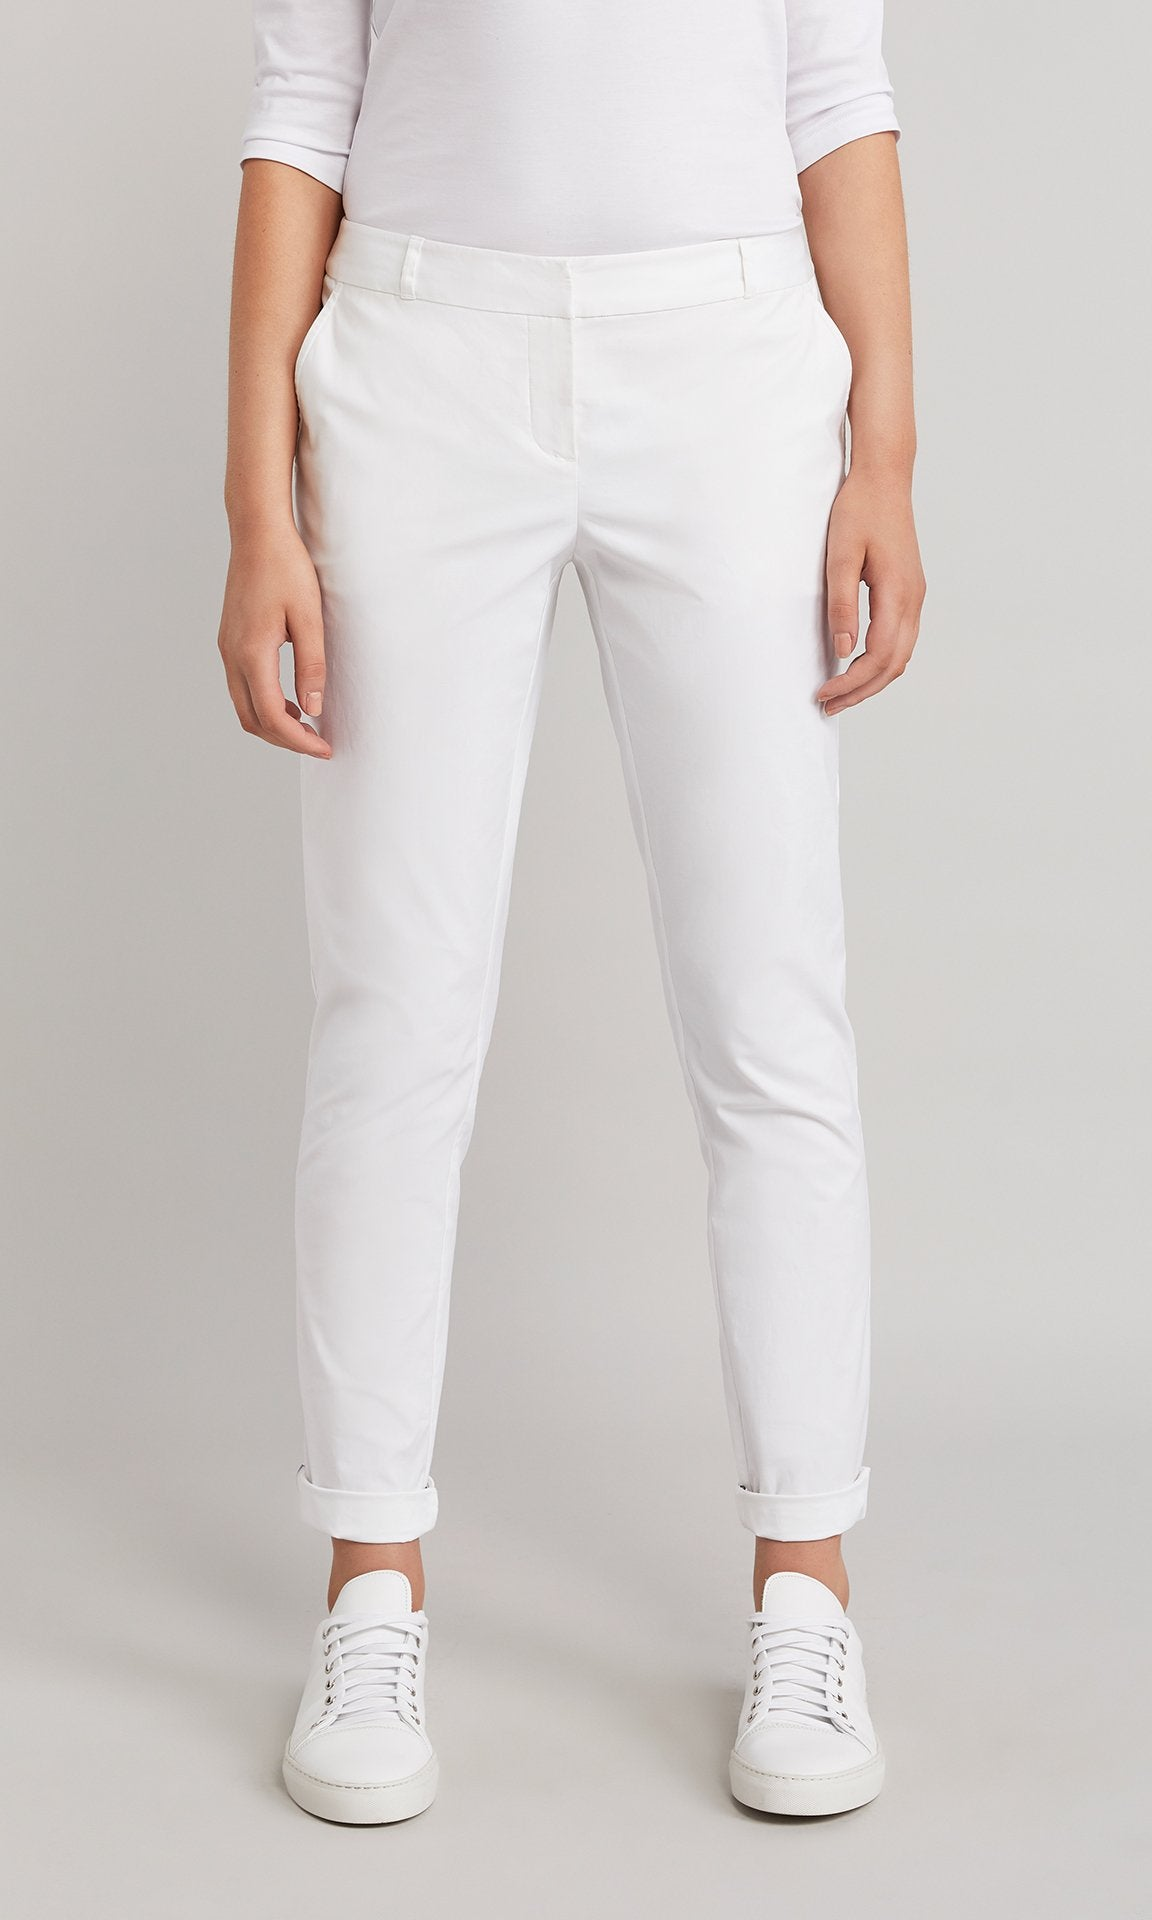 Baxter Trouser - White